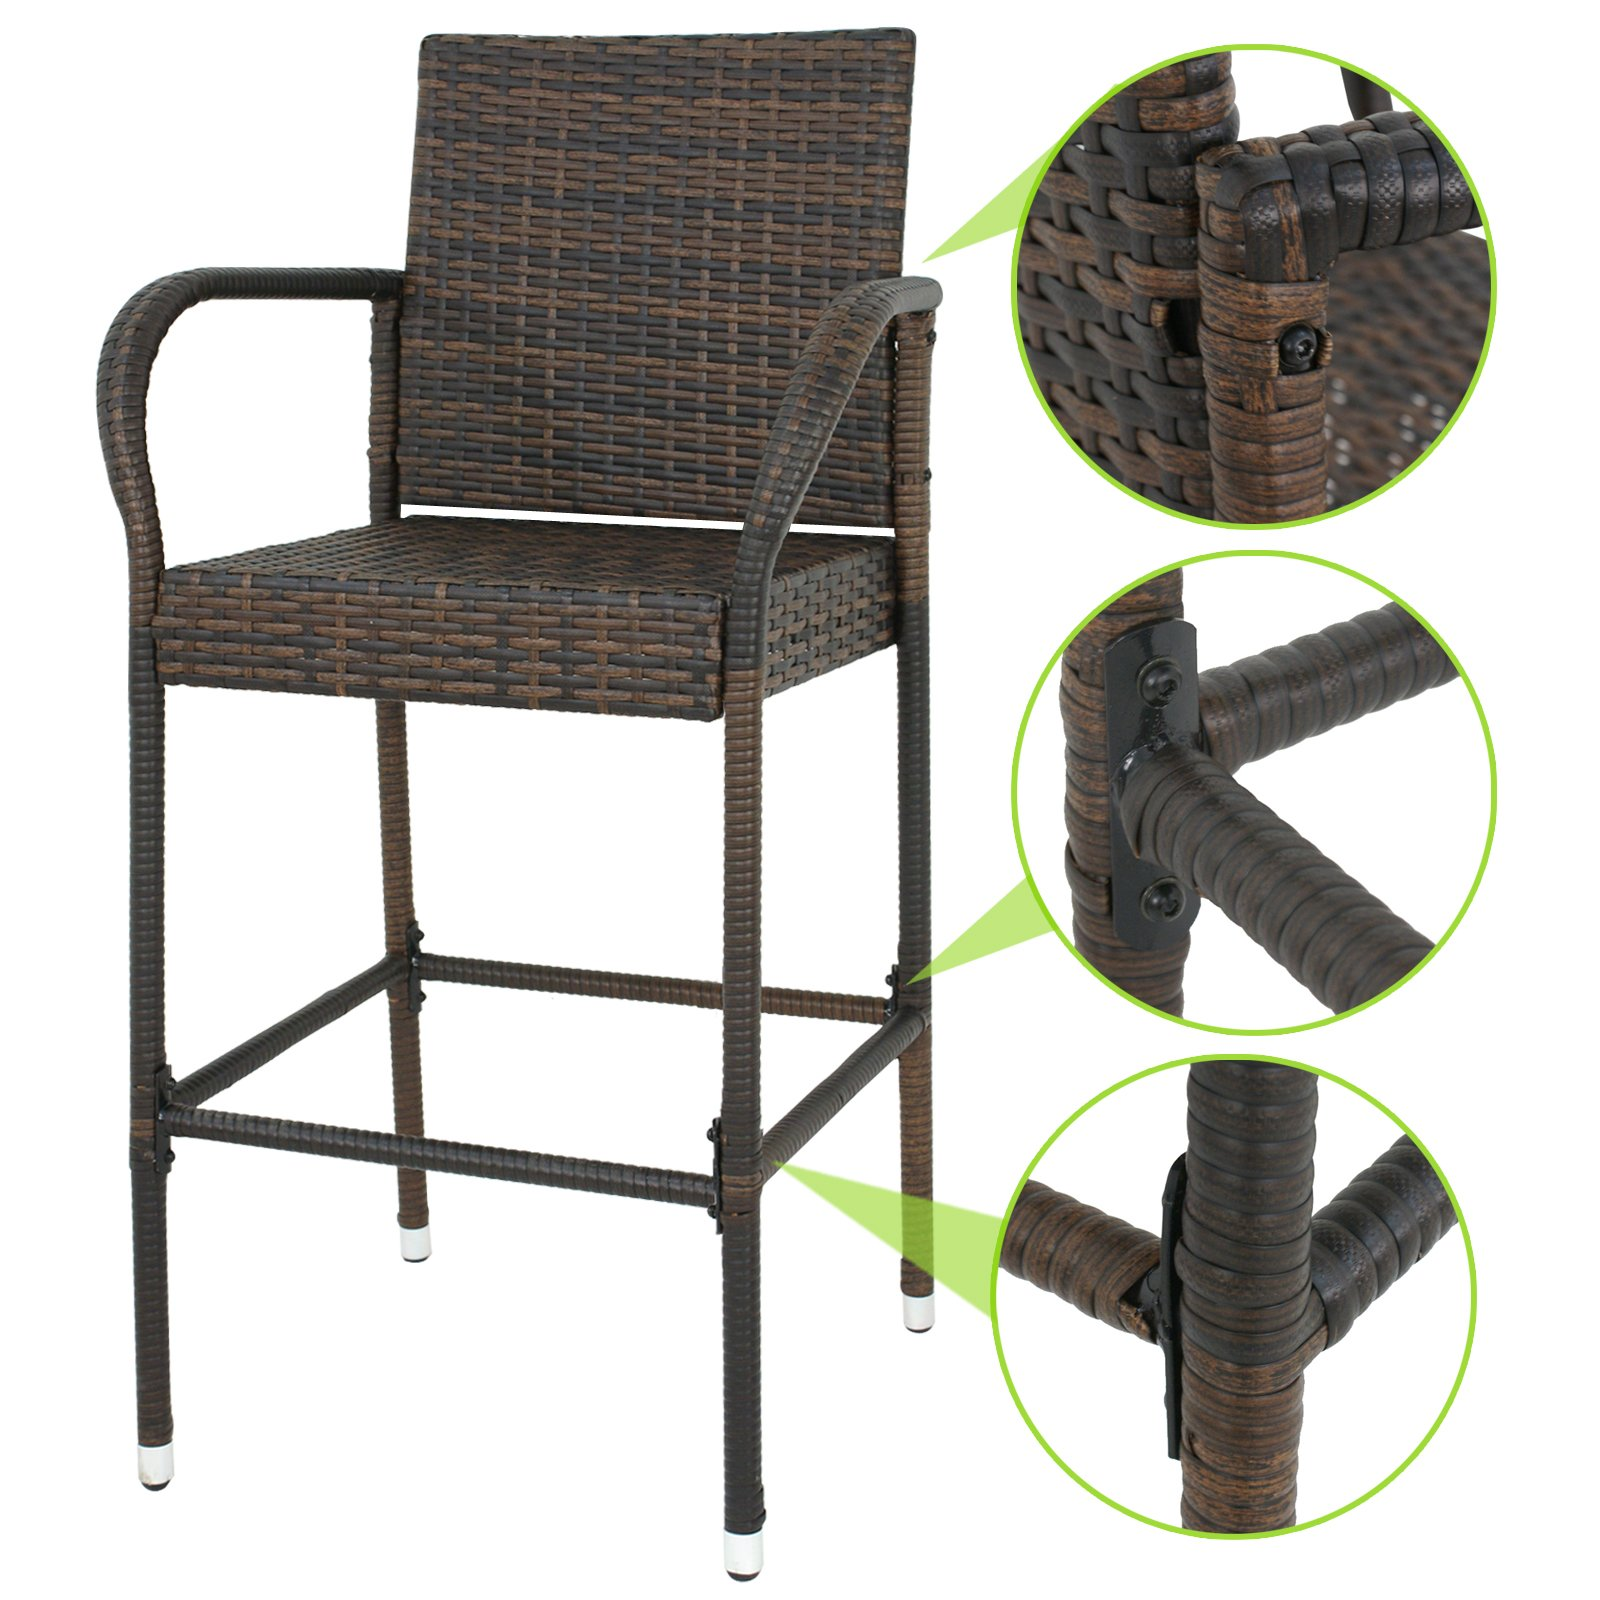 SUPER DEAL Wicker Bar Stool Outdoor Backyard Rattan Chair Patio Furniture Chair w/Iron Frame, Armrest and Footrest, Set of 4 by SUPER DEAL (Image #4)